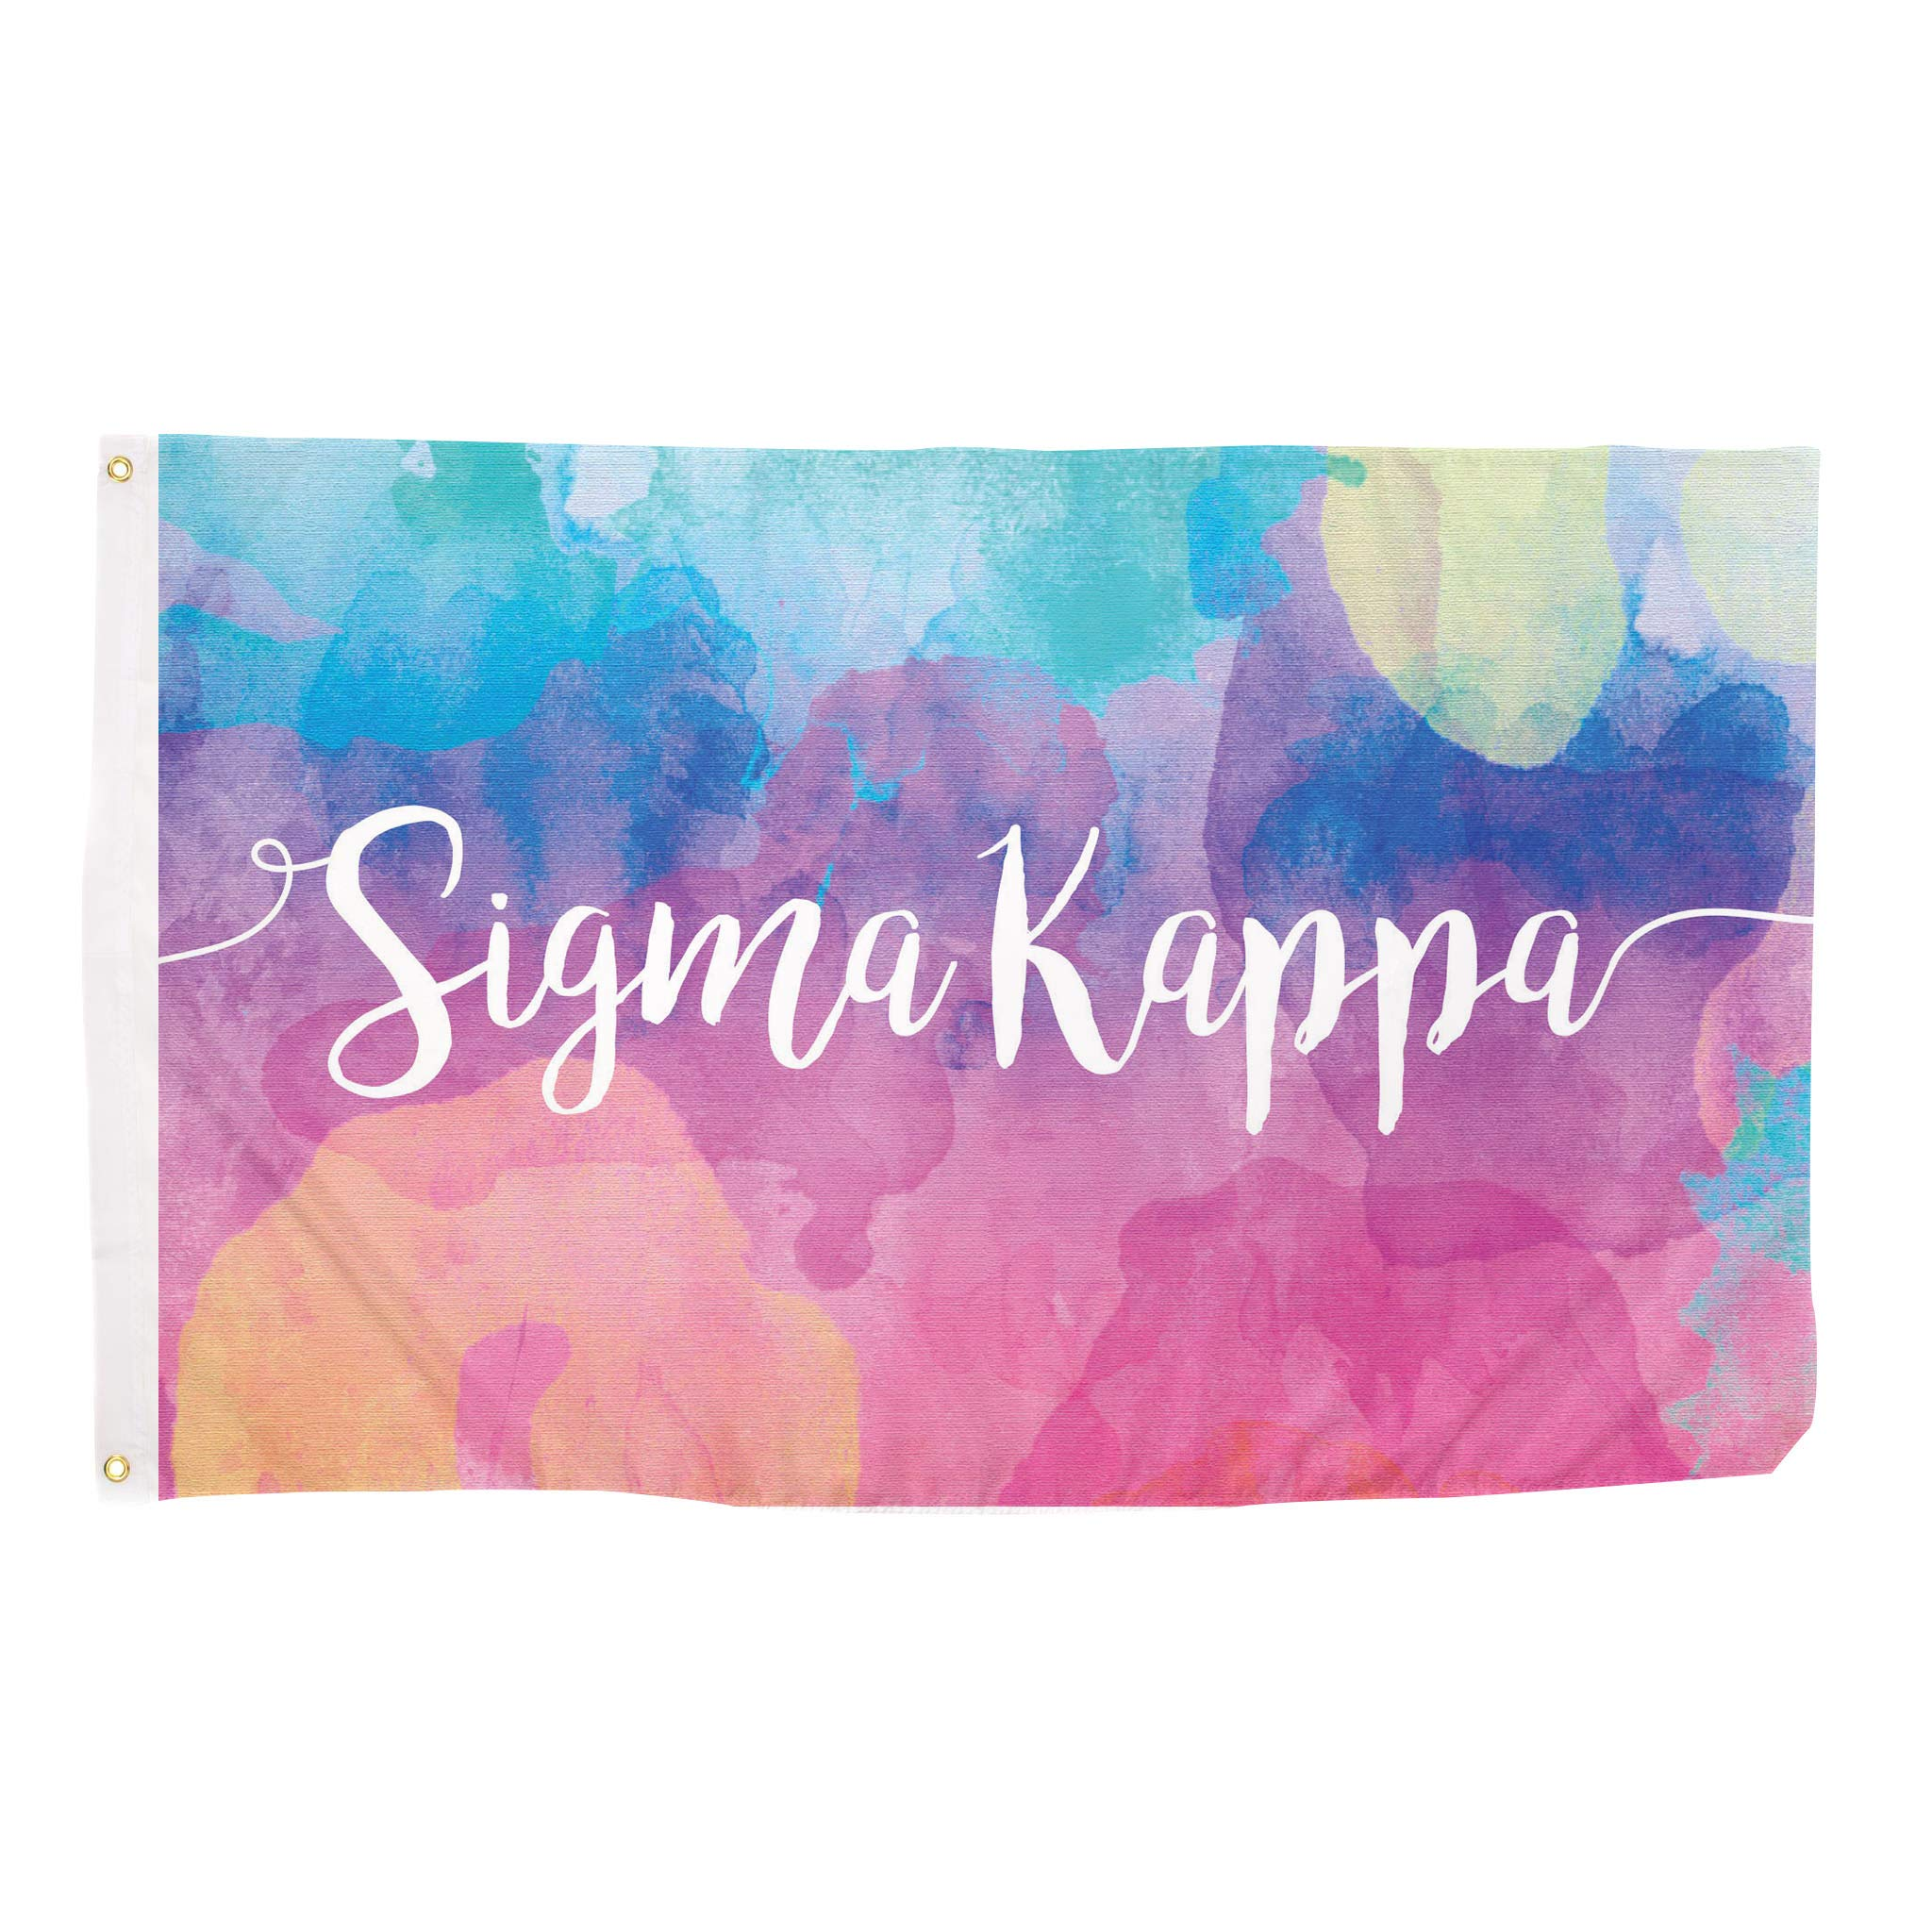 Sigma Kappa Water Color Sorority Flag Greek Letter Use as a Banner Large 3 x 5 Feet Sign Decor Sig Kap by Desert Cactus